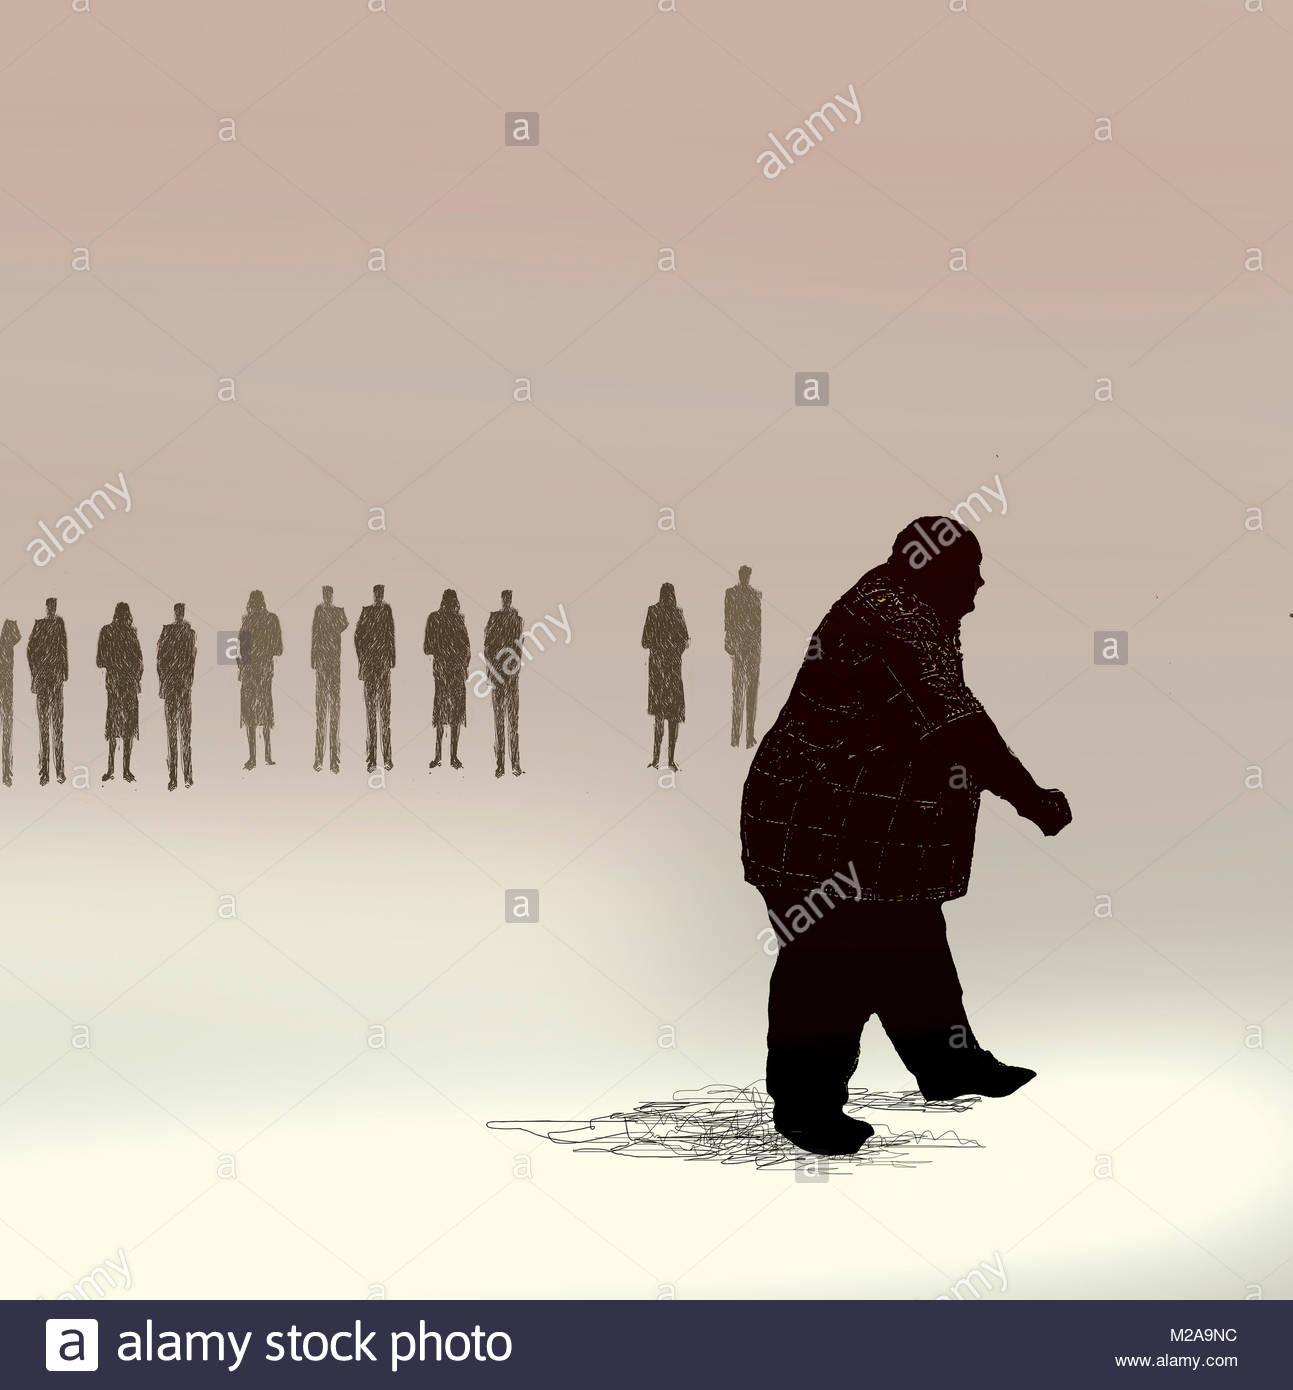 Group of people excluding overweight man - Stock Image